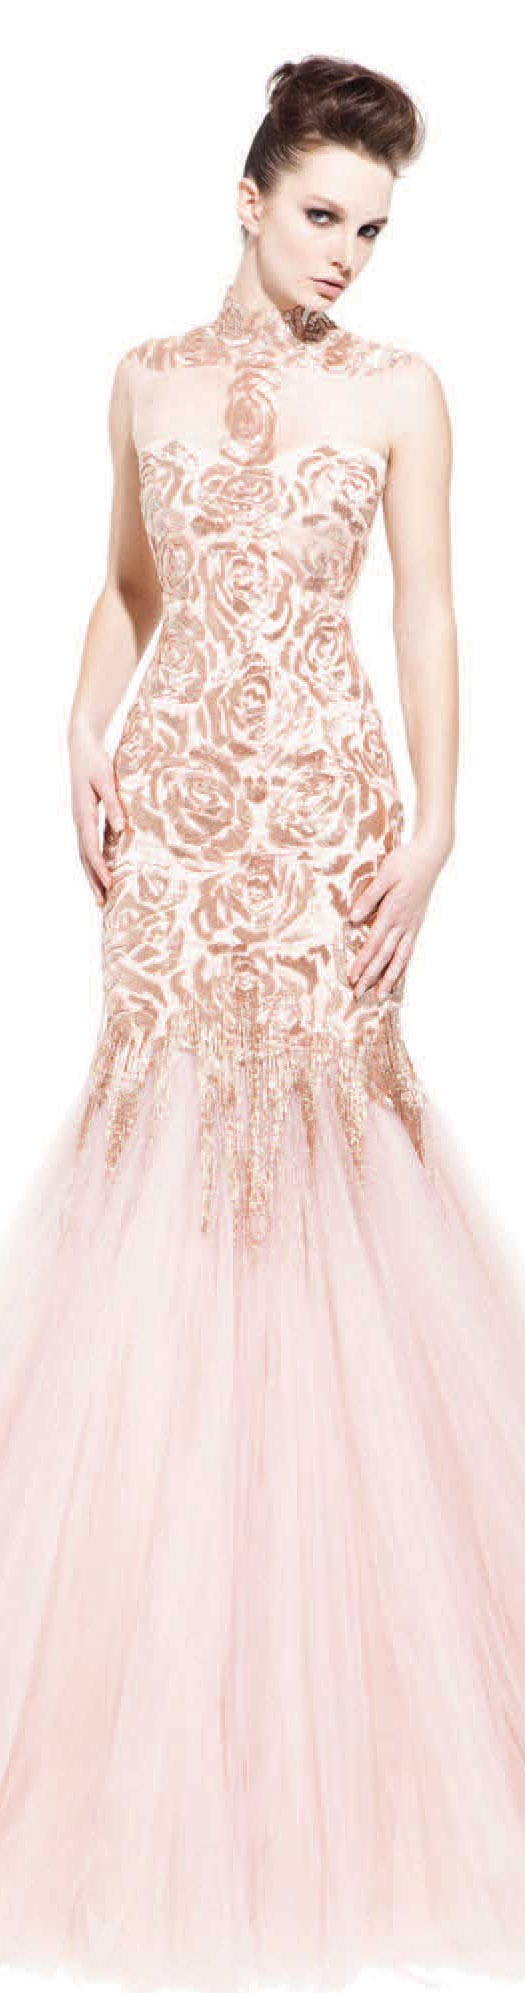 PAVONI Collection - Fall/Winter 2012 #long #nude #dress